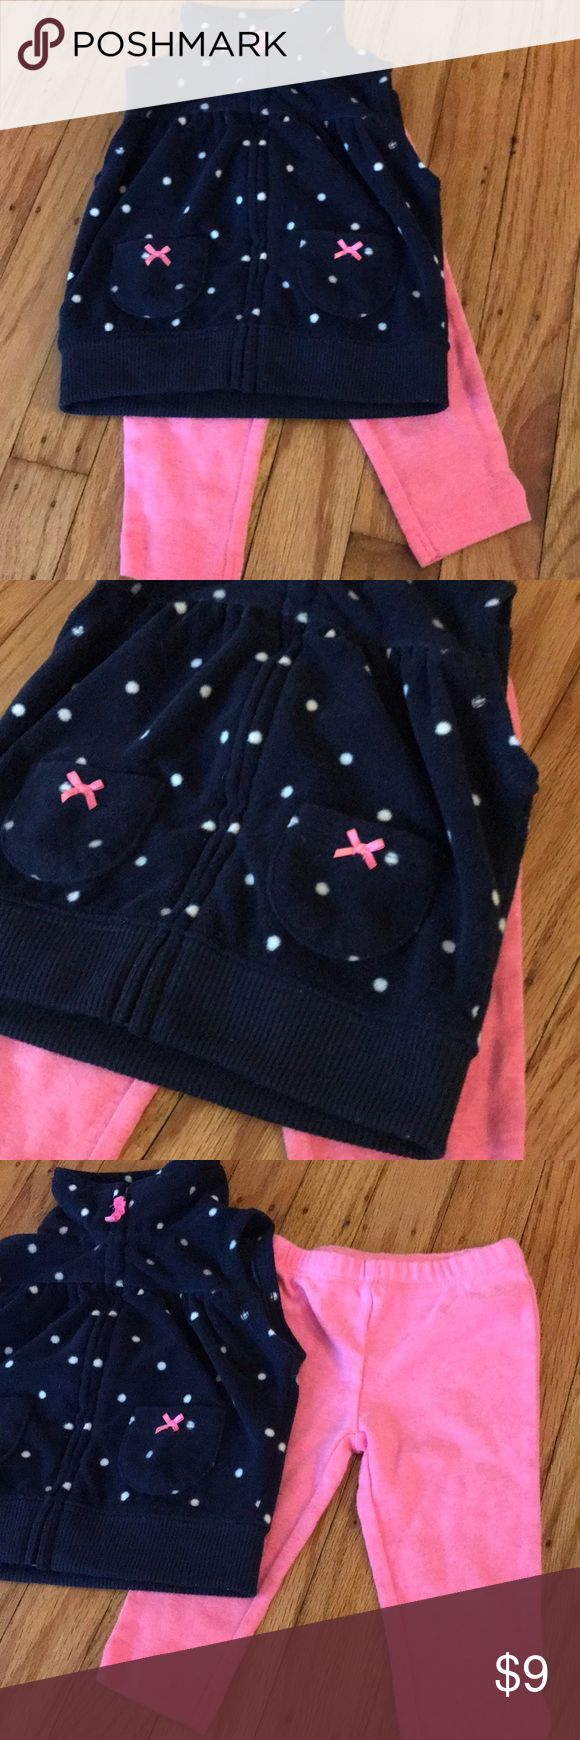 Baby girl vest set Soft fleece feel navy blue and white polka dot vest with coordinating pants Carter's Matching Sets